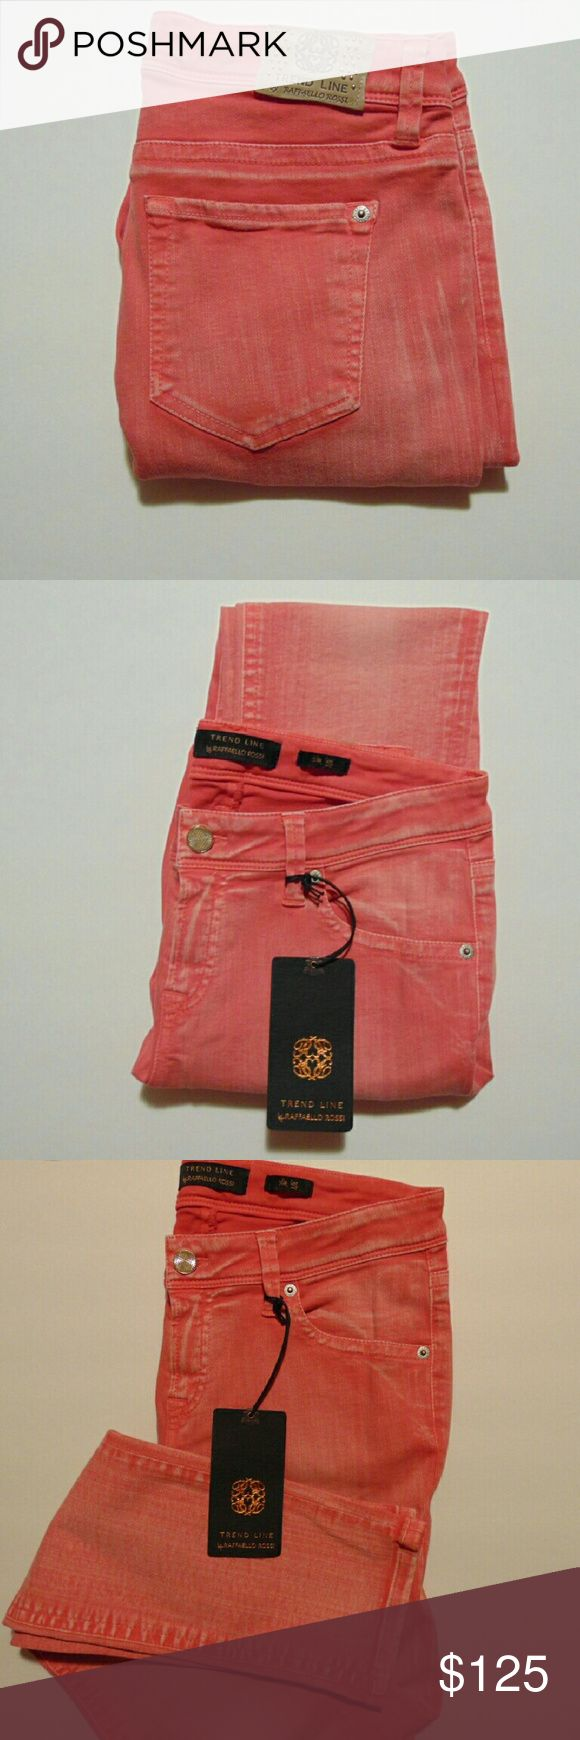 Raffaello Rossi Sinty Slim Leg Jeans Raffaello Rossi is Europe's leading designer in jeans and trousers. The Sinty style is one of Raffaello Rossi's most popular denim styles. This item is new with tags. European Size 36. Raffaello Rossi Jeans Skinny